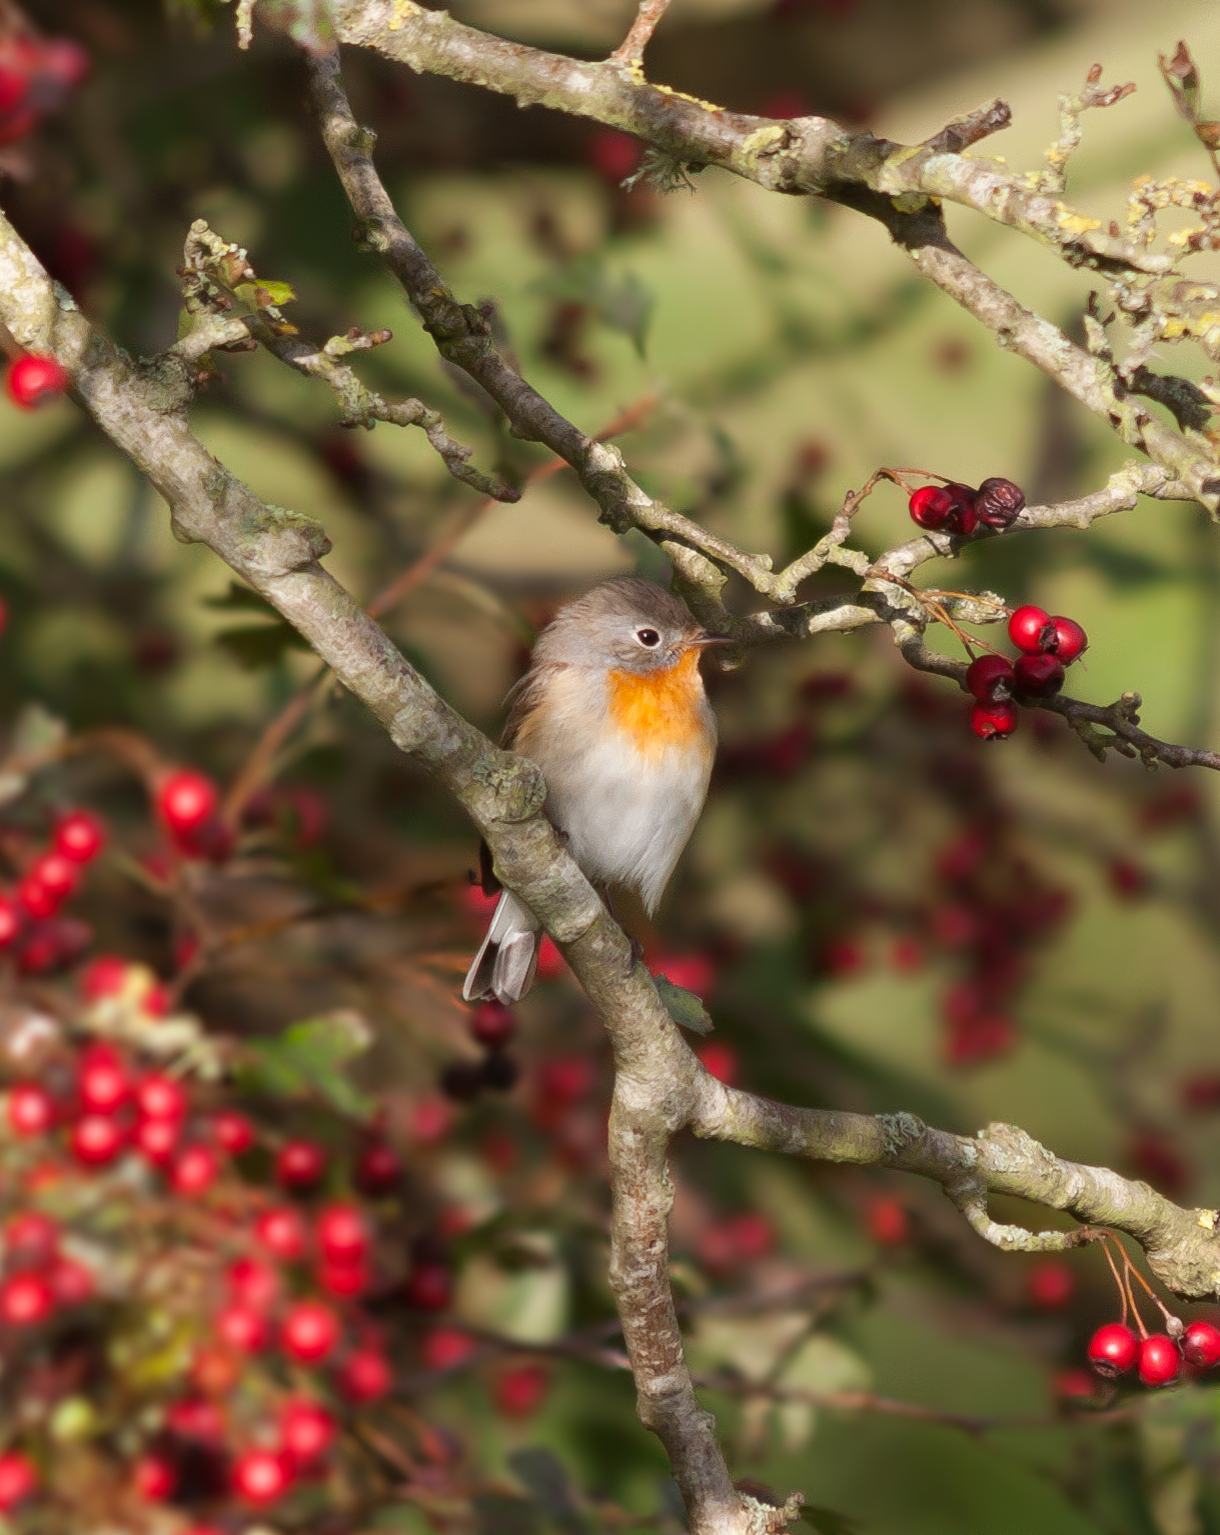 Red-breasted Flycatcher - Beachy Head, Sussex